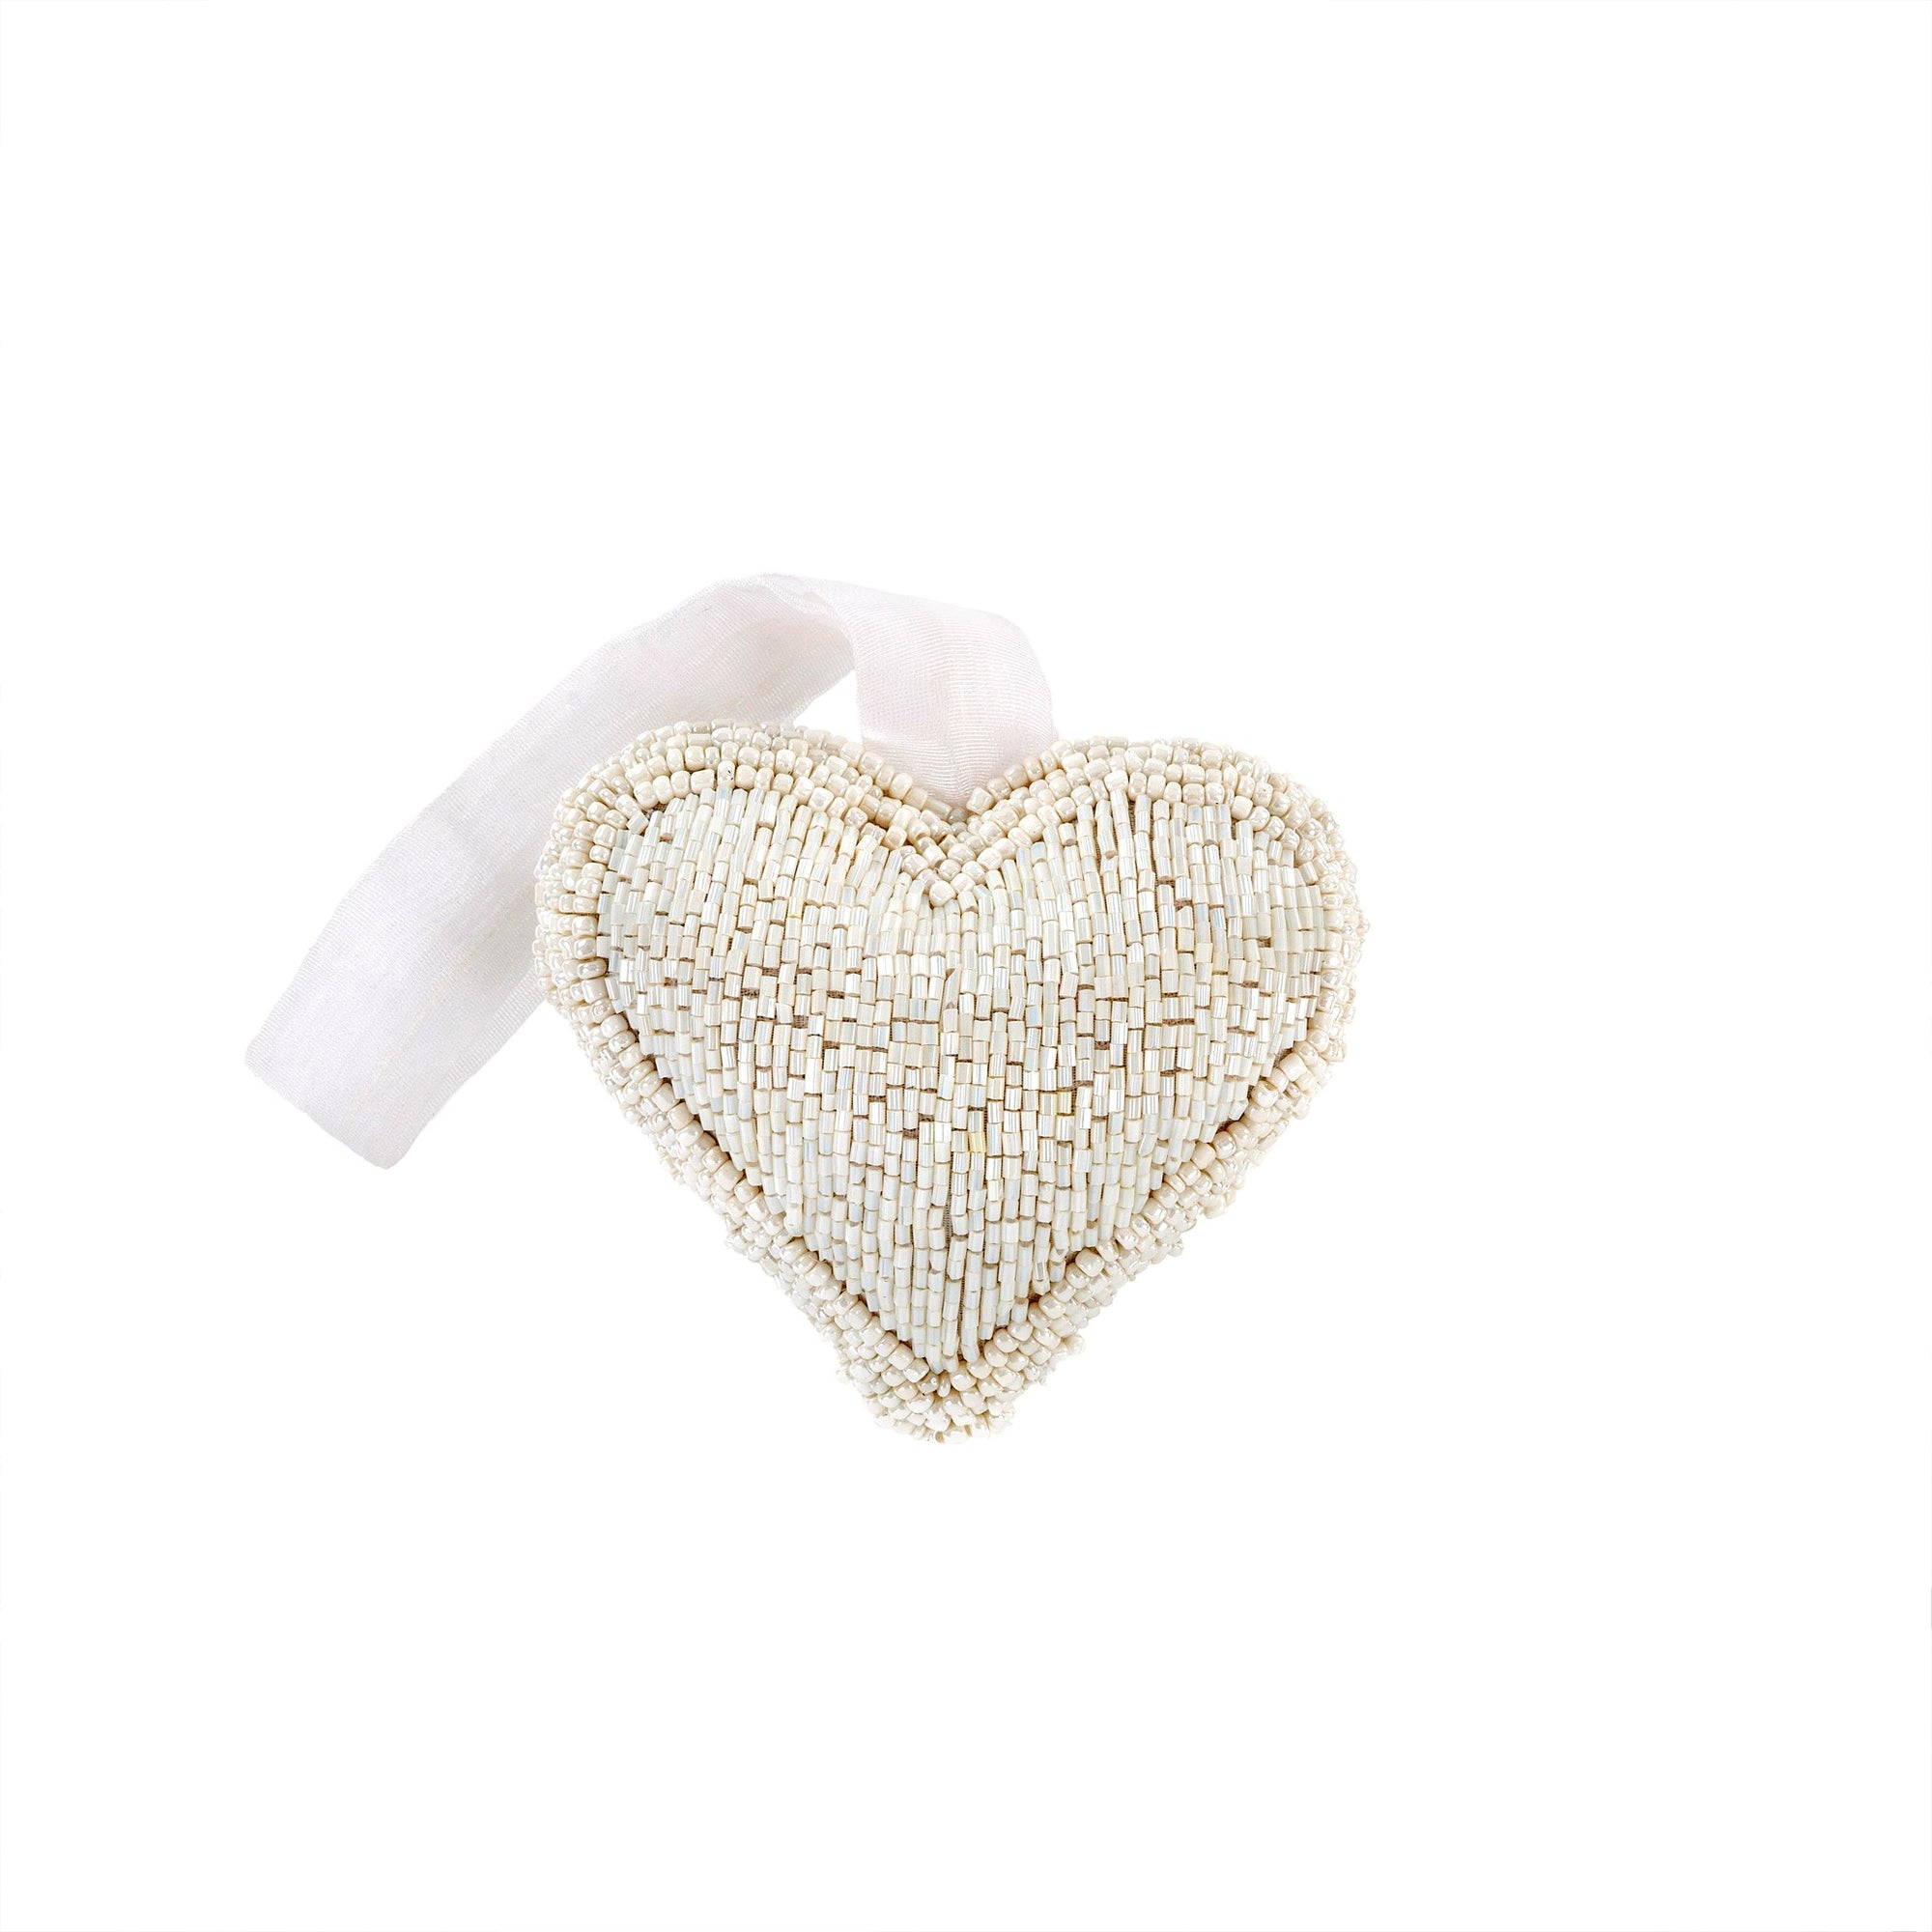 White Beaded Heart Ornament - Small